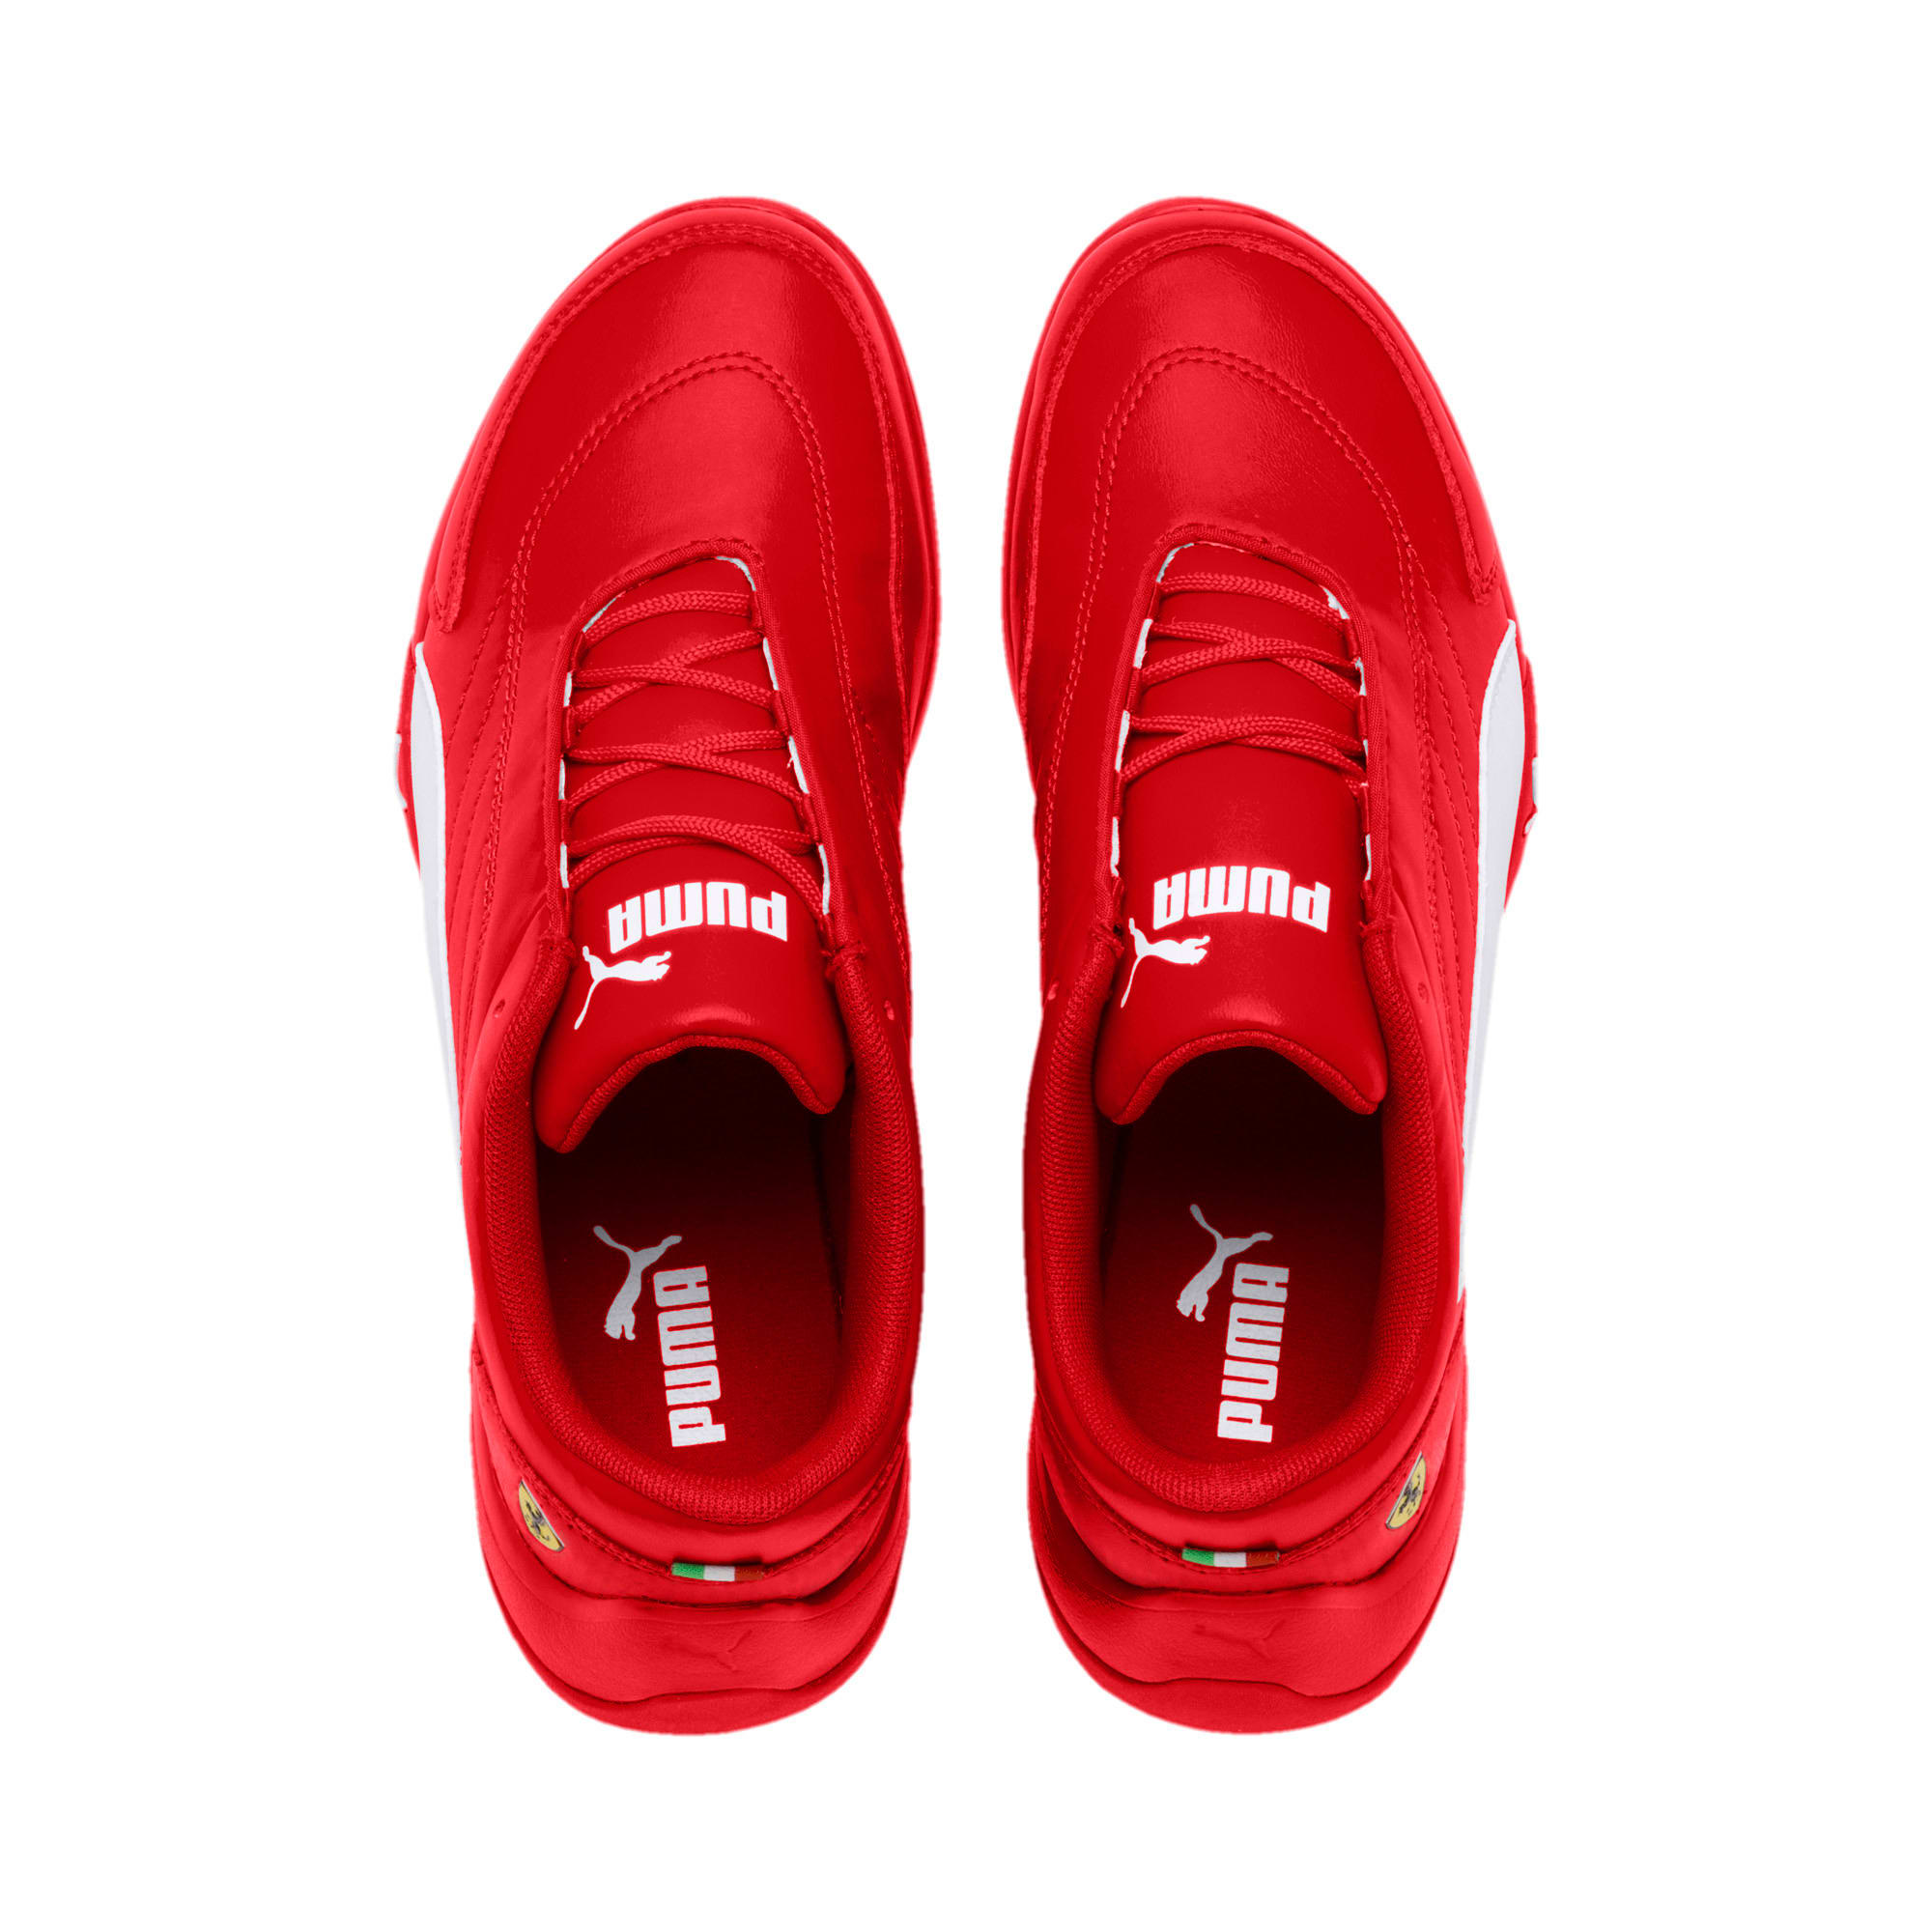 Thumbnail 2 of Ferrari Kart Cat III Youth Trainers, Rosso Corsa-Wht-Rosso Corsa, medium-IND